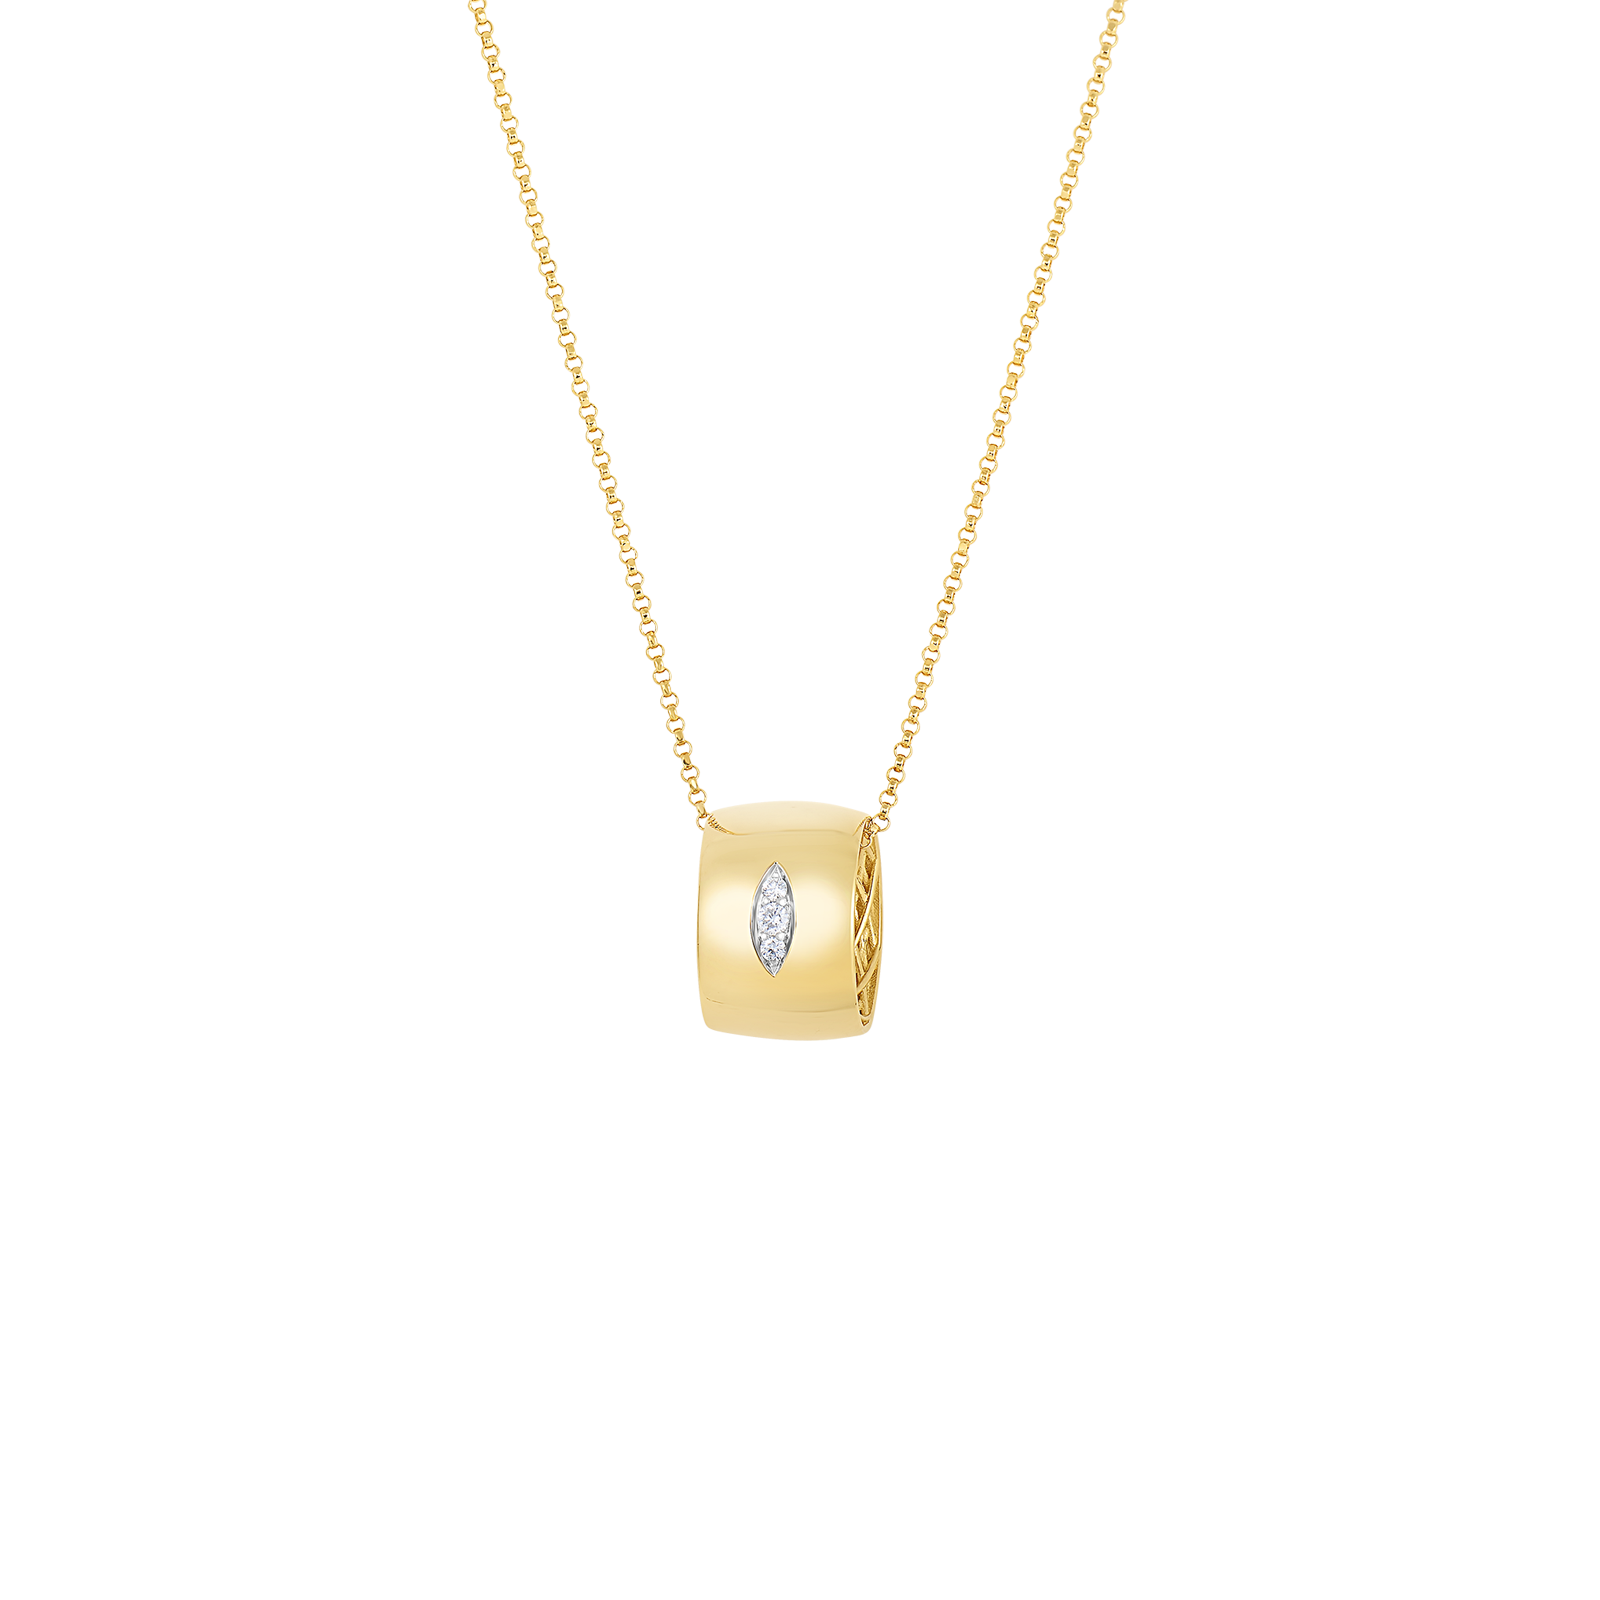 Wide Gold Pendant With Diamonds